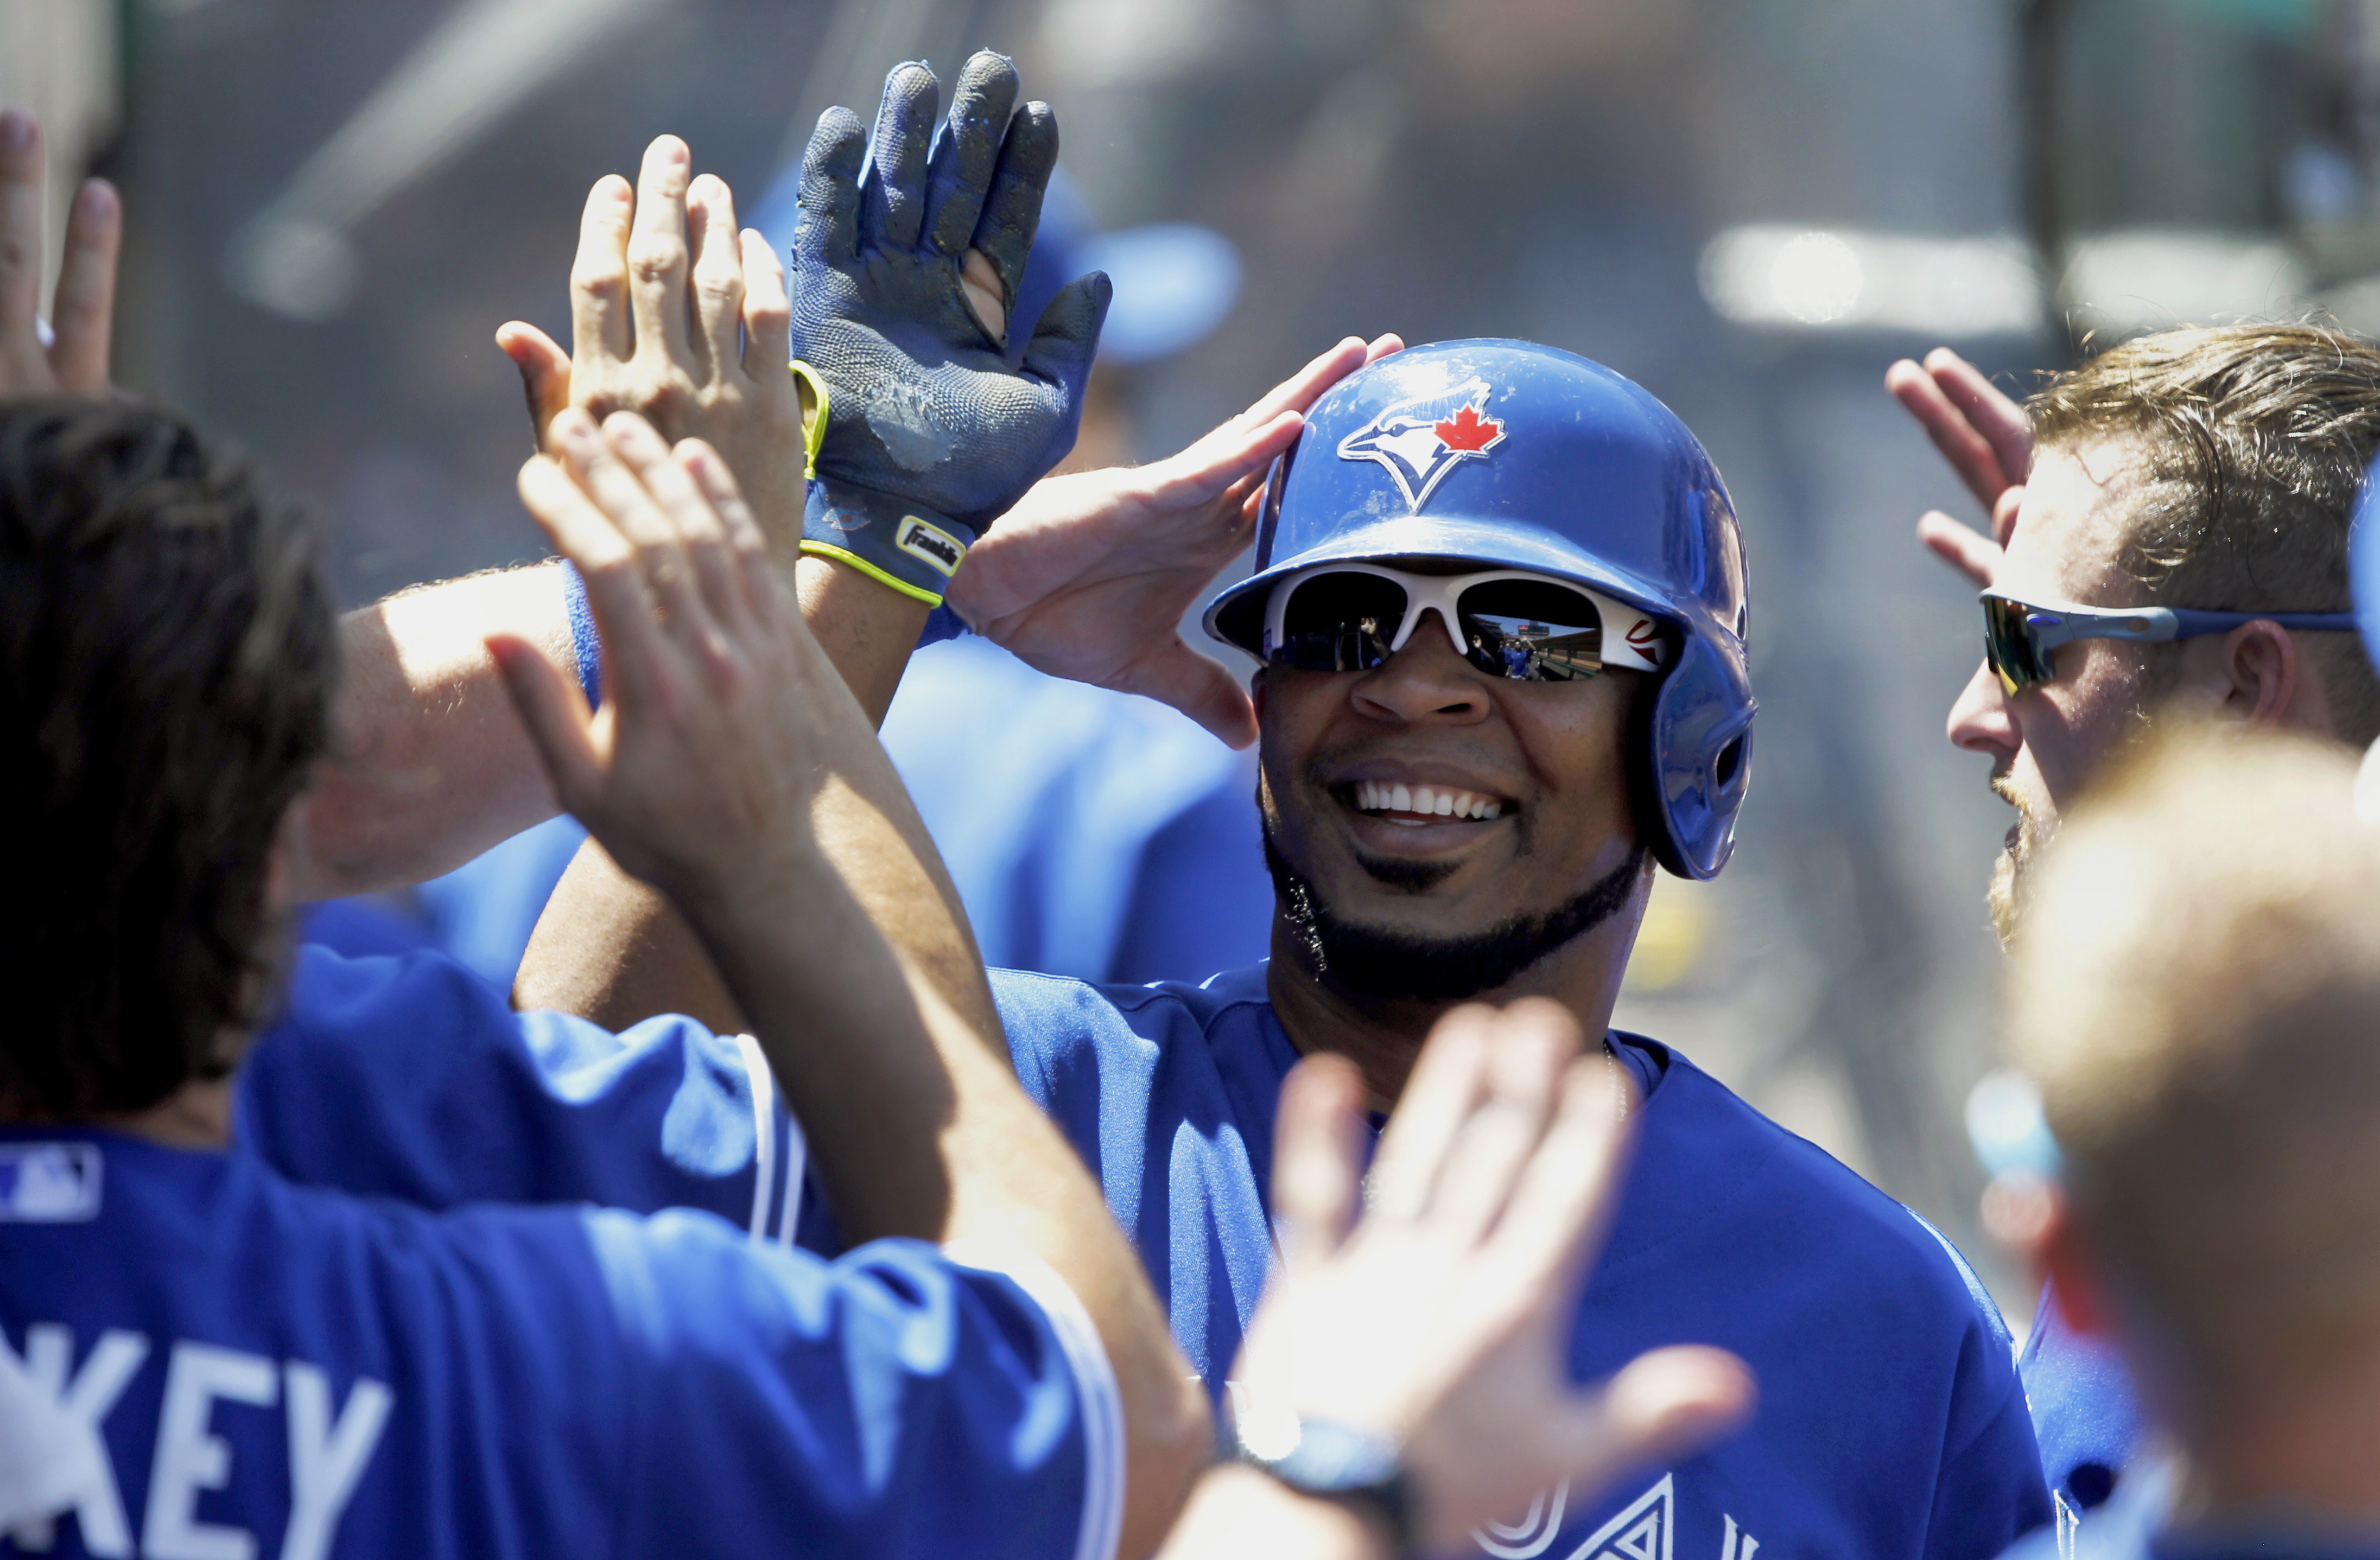 Toronto Blue Jays' Edwin Encarnacion, center, gets congratulations from teammates after scoring on an infield single by Ben Revere during the third inning of a baseball game against the Los Angeles Angels in Anaheim, Calif., Sunday, Aug. 23, 2015. (AP Pho